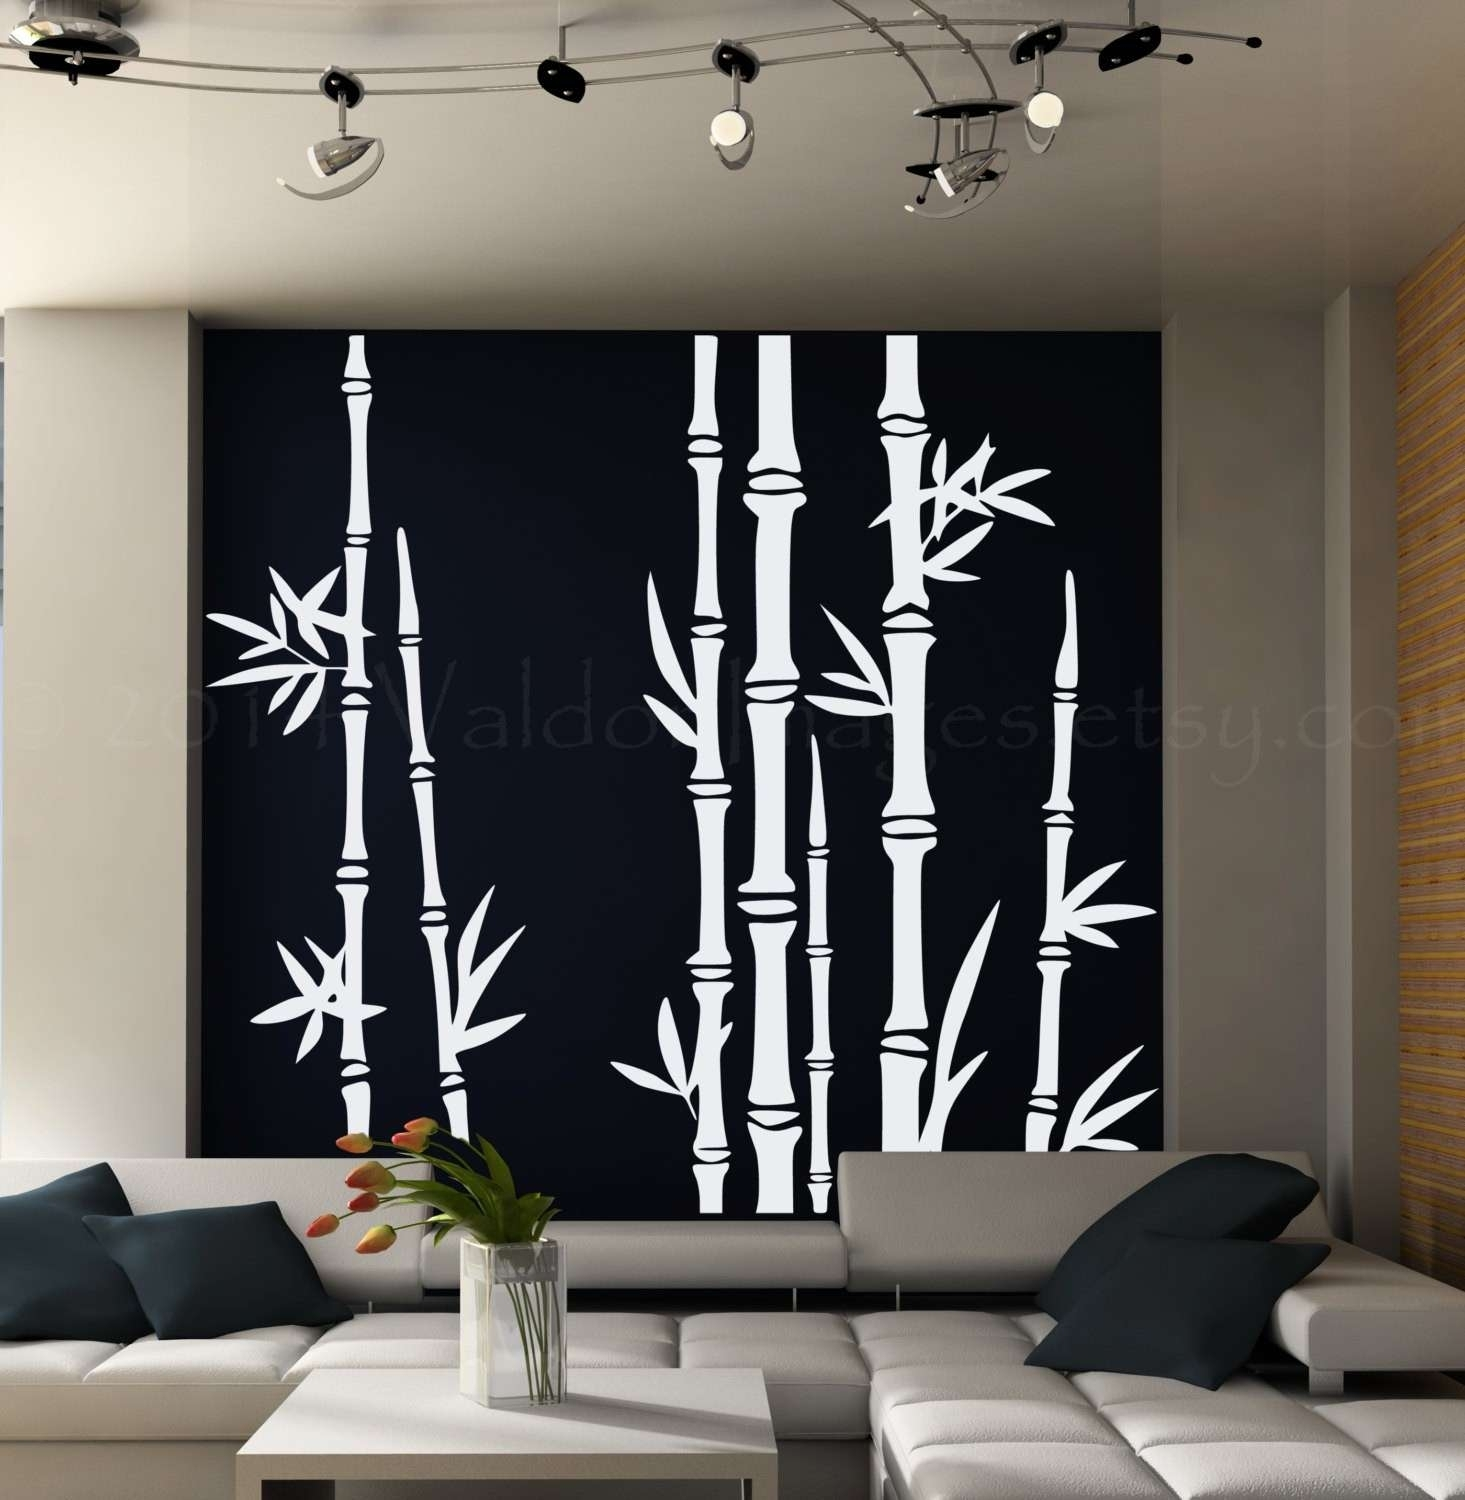 Bamboo Wall Art New Bamboo Wall Decal Asian Art Wall Stickers Lush Throughout Best And Newest Bamboo Wall Art (View 10 of 20)